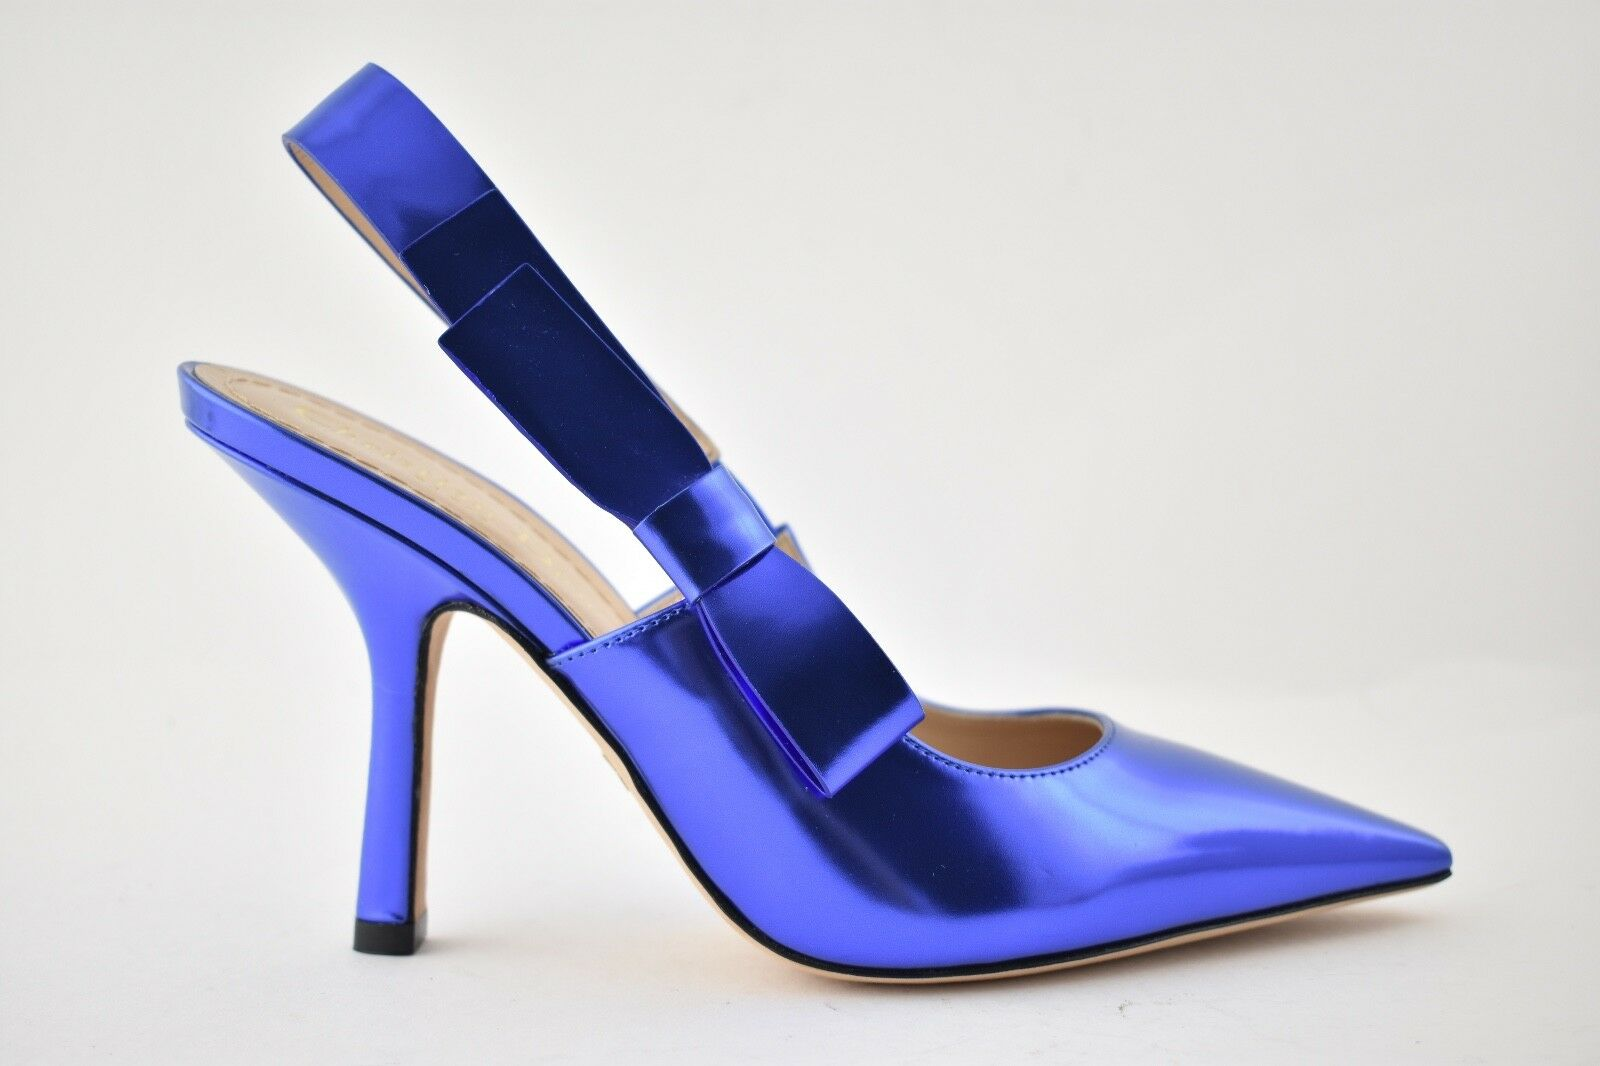 NIB Dior J'adior Sweet D bluee Metallic Leather Slingback Sandal Heel Pump 36.5